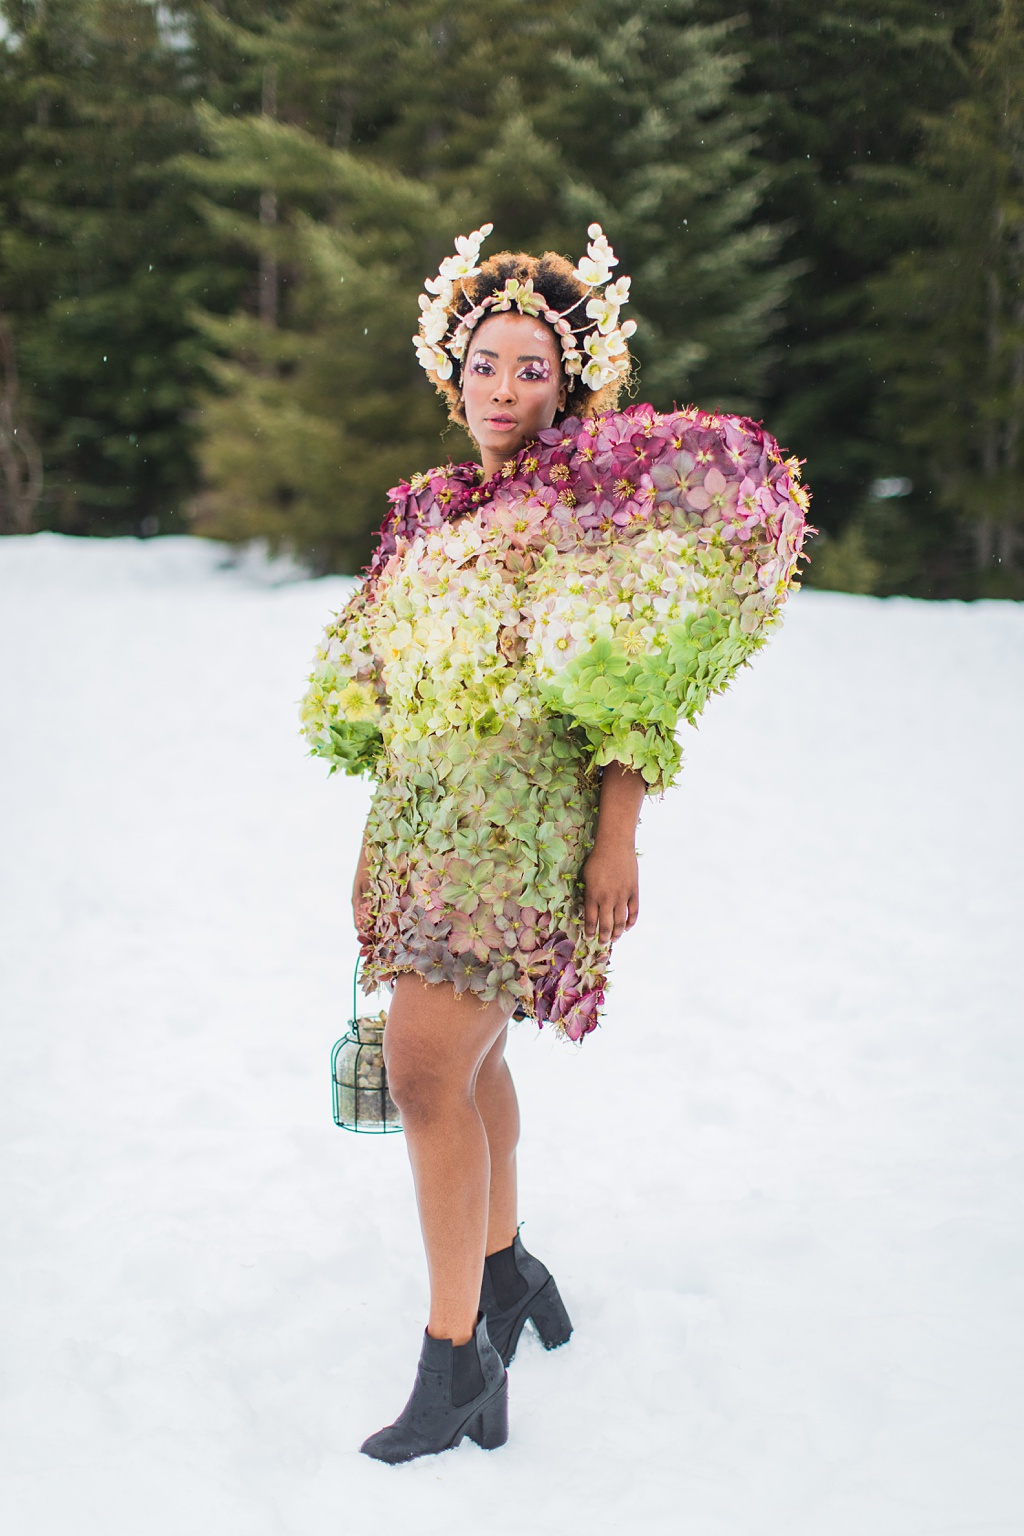 A woman in a dress made of hellebores with a crown made of hellebores in the snow, holding a lantern